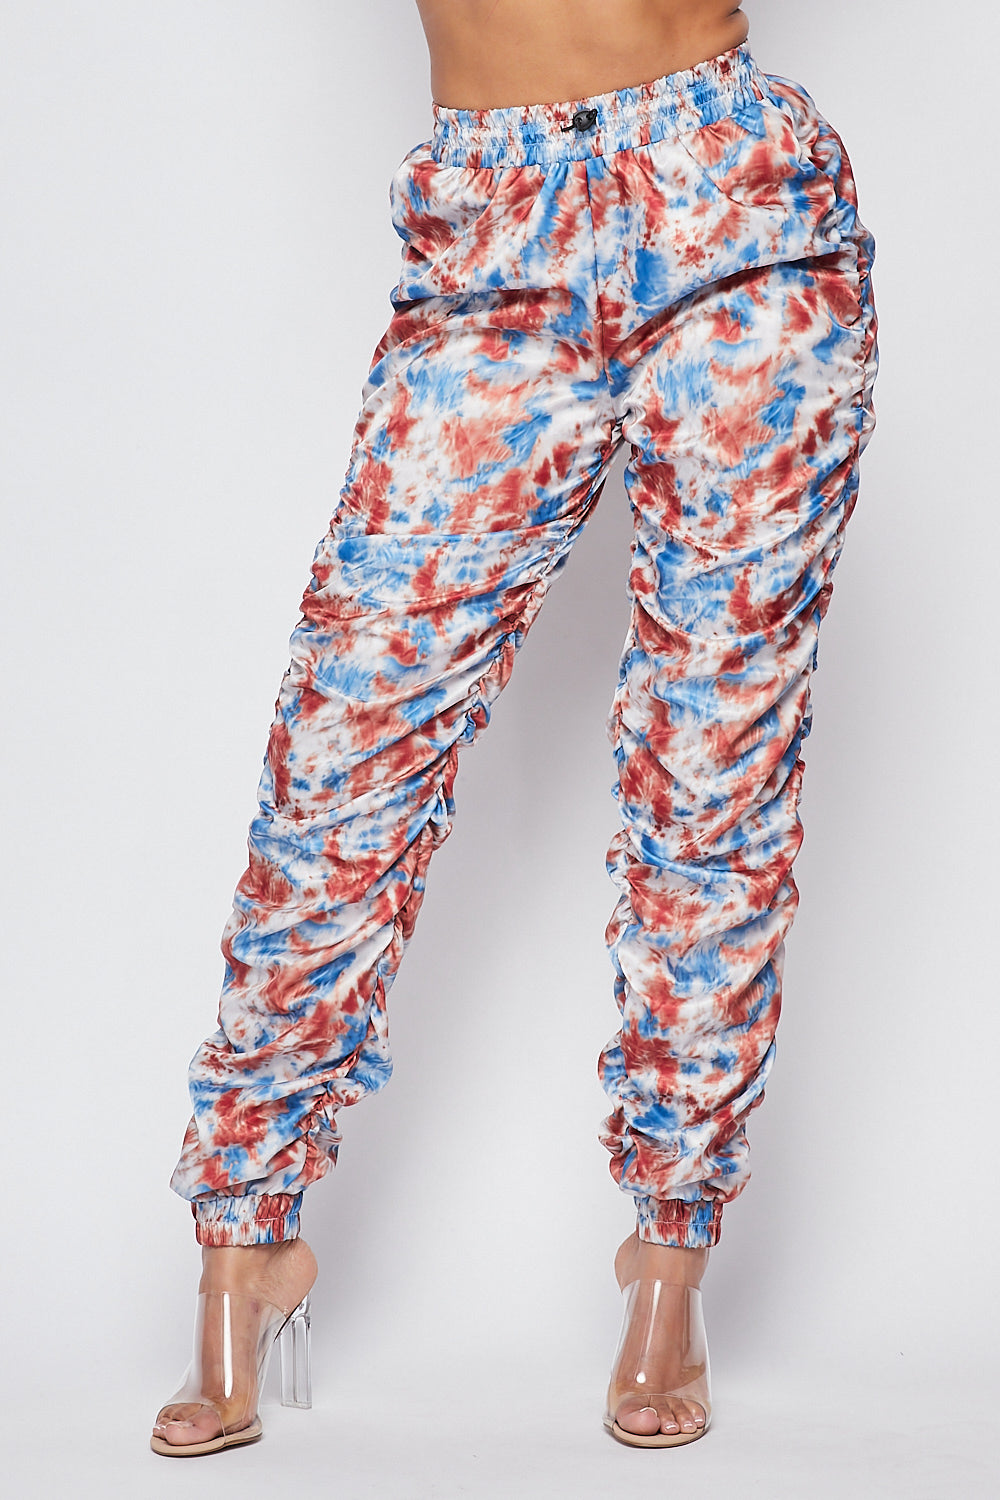 Sexy Tie Dye  Ruched Fitted Jogger Pants - Fashion House USA